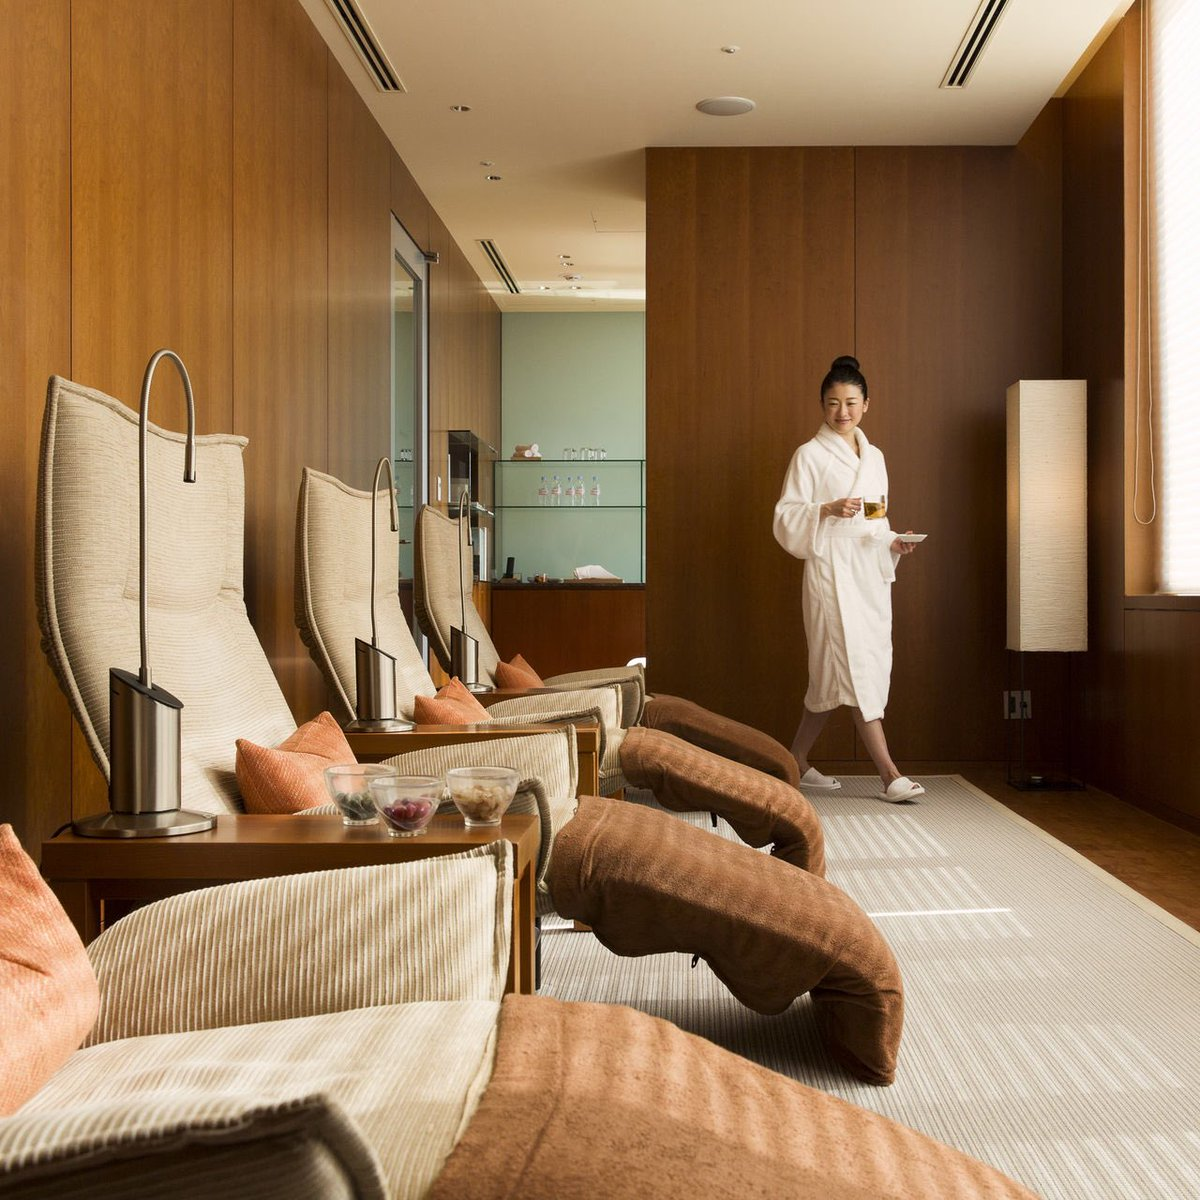 Our Luxury Beauty Spa Package including spa treatment and a lunch with a glass of champagne at Cuisine[s] Michel Troisgros. #hyattregency https://t.co/eNVR4VRnKd